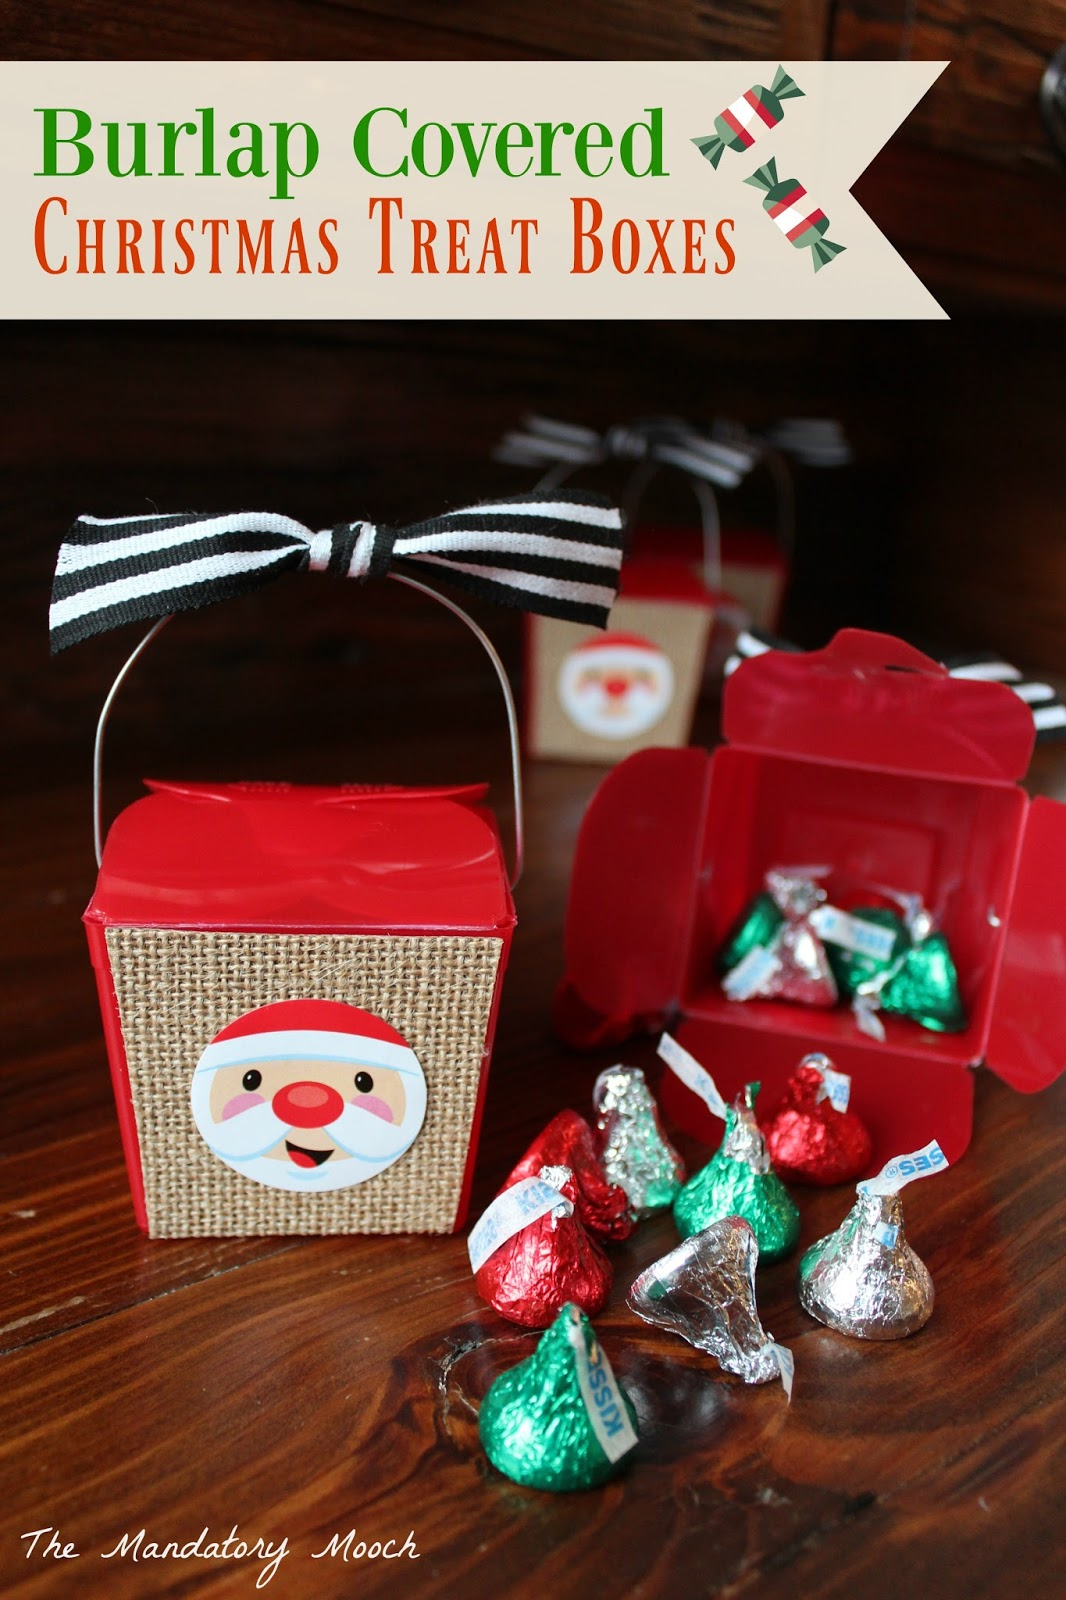 Aug 26, · How's that for a Christmas miracle? I wanted my treats to look like little snowballs, so I filled the boxes with white cake balls. But have fun with it, .